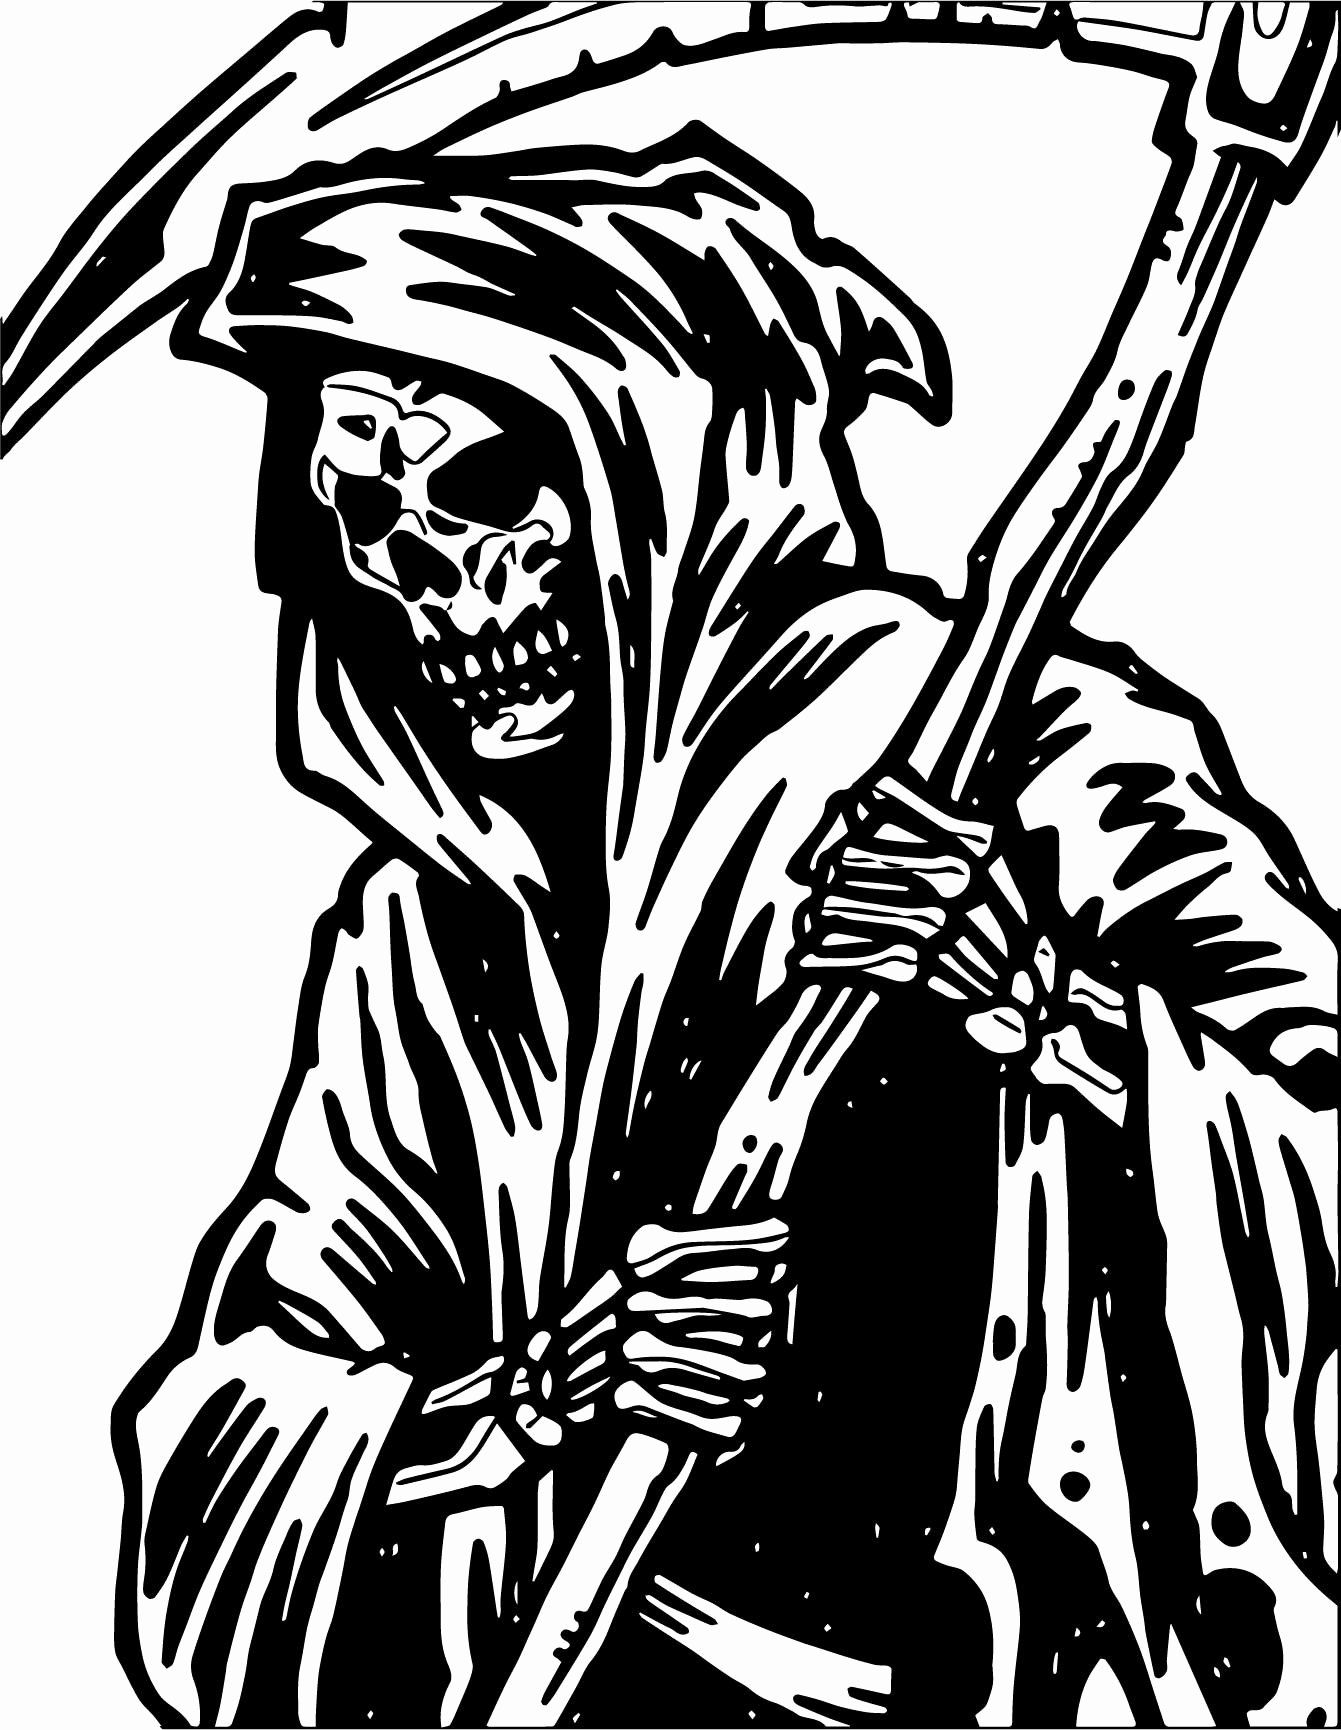 Grim Reaper Coloring Pictures Beautiful Is The Grim Reaper Evil Coloring Pictures Grim Reaper Owl Tattoo Sleeve